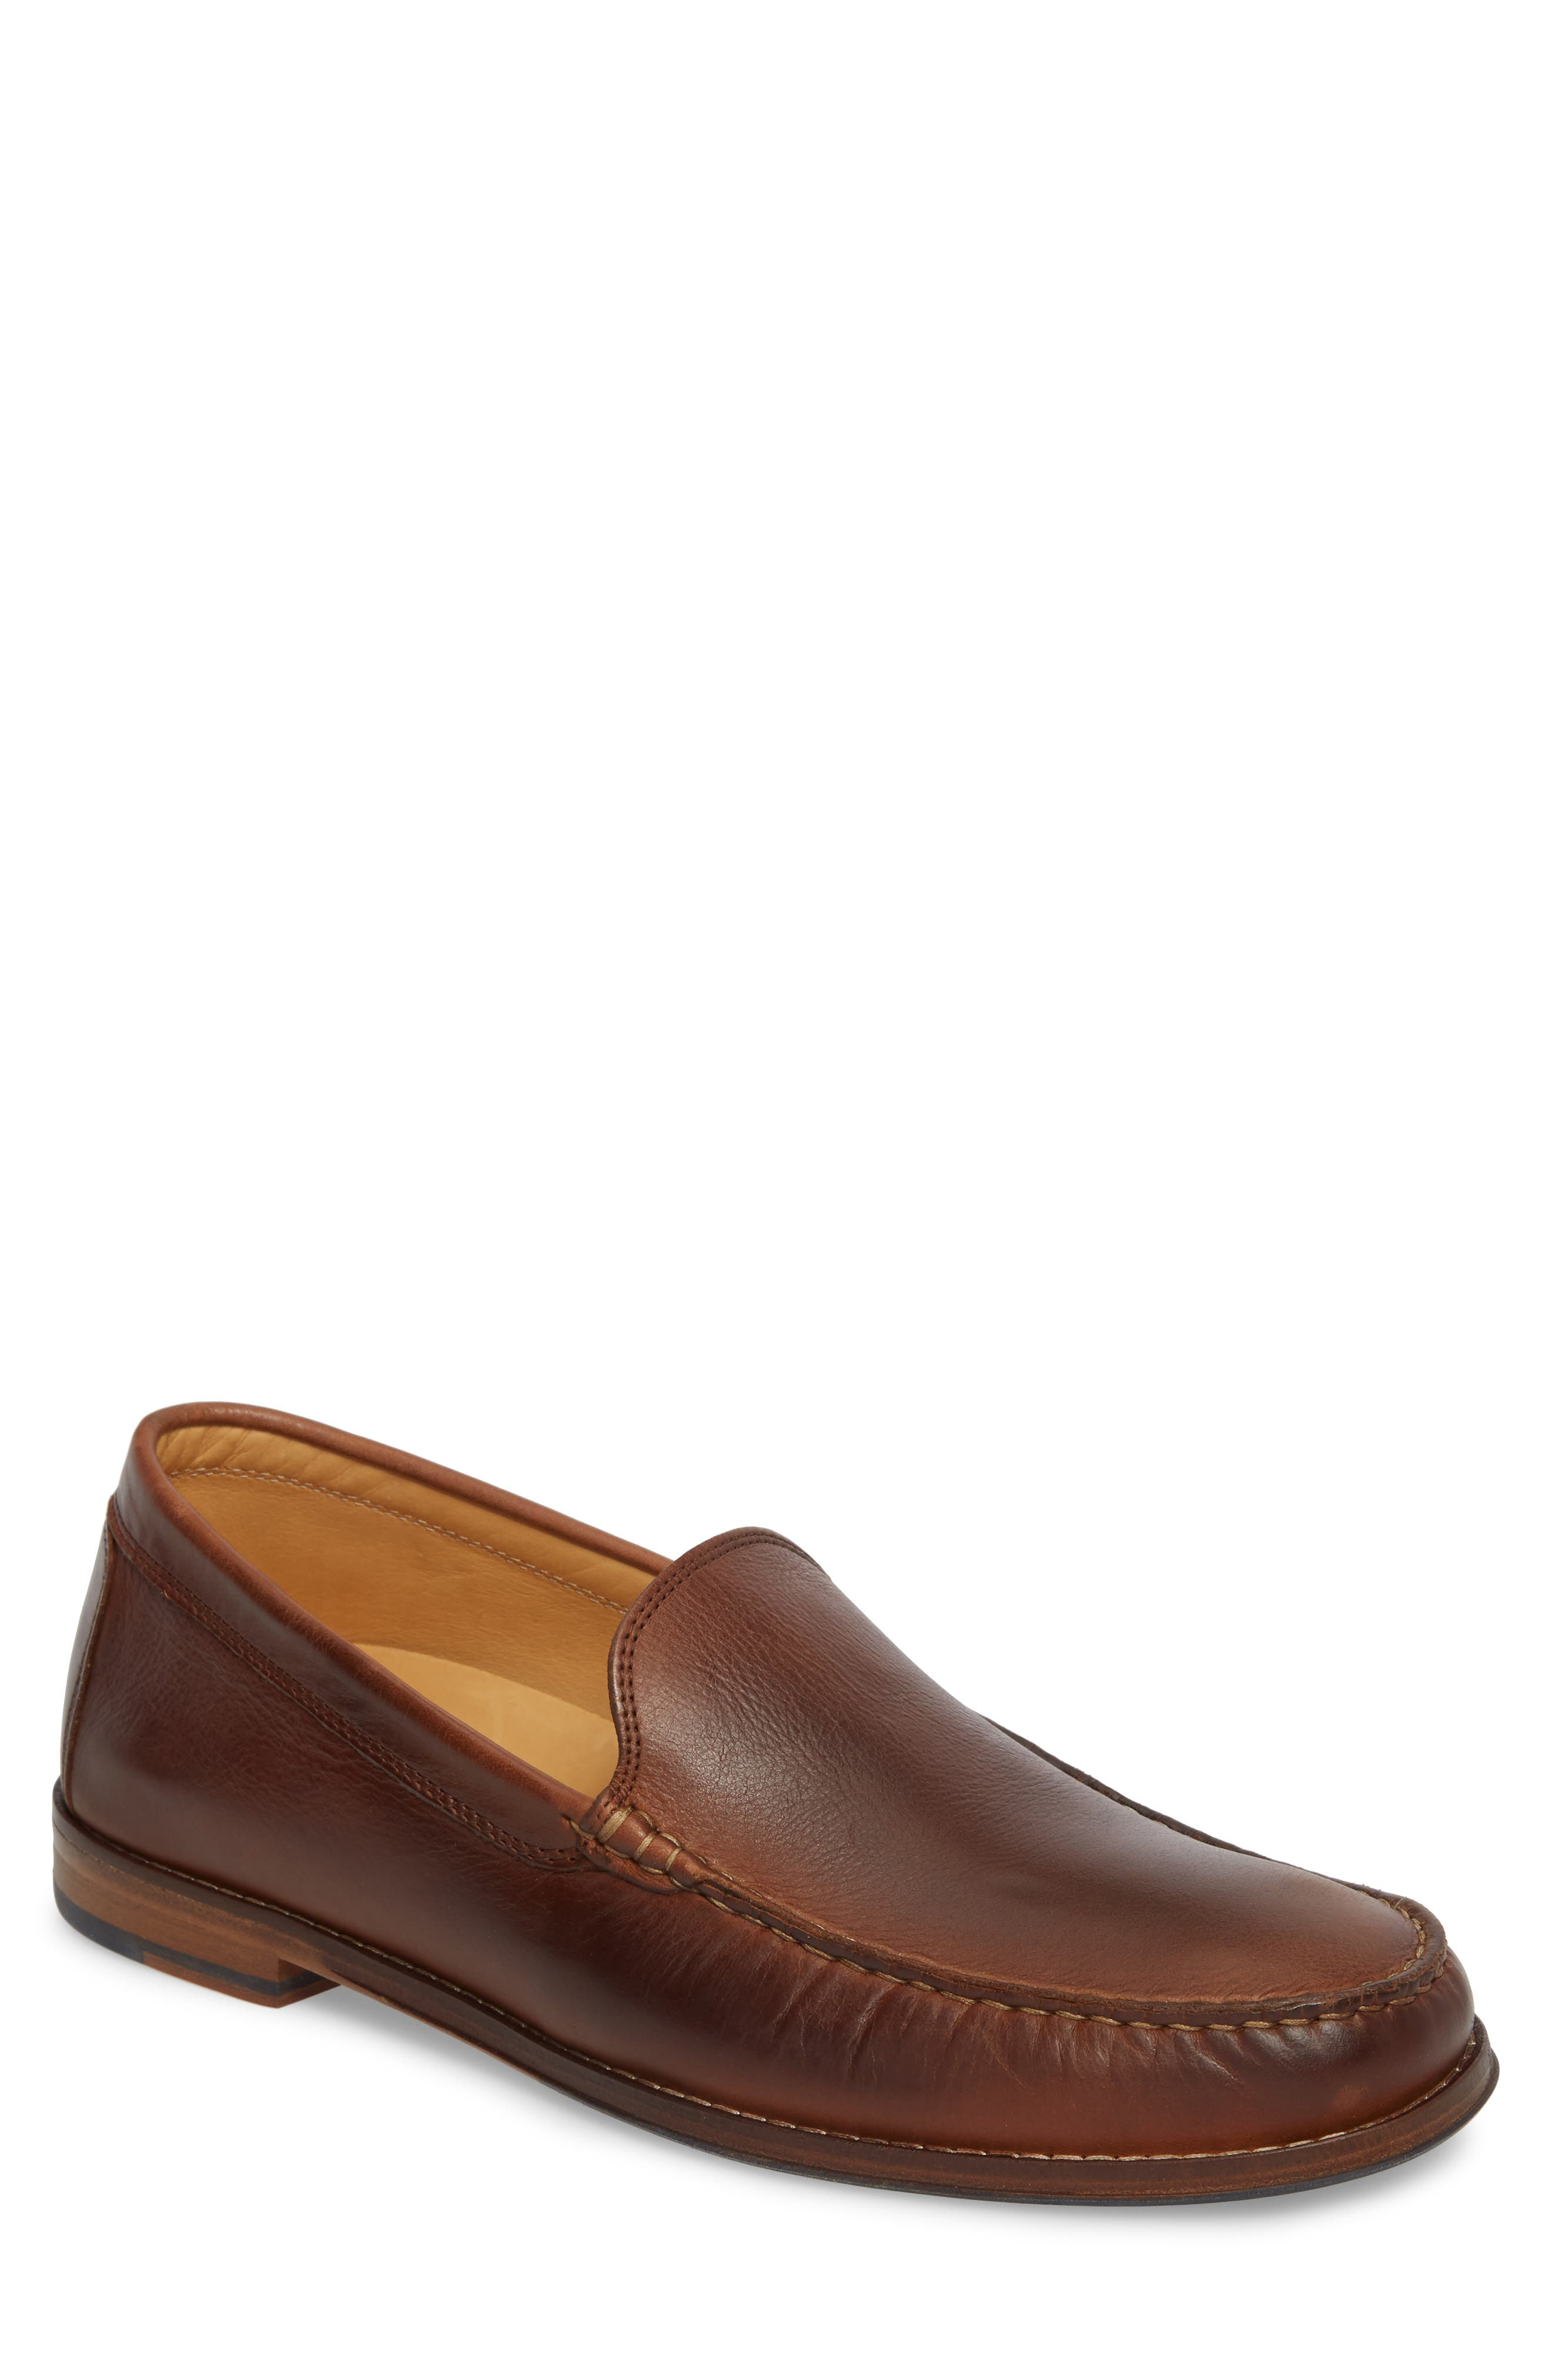 Austen Heller Caldwells Loafer (Men)